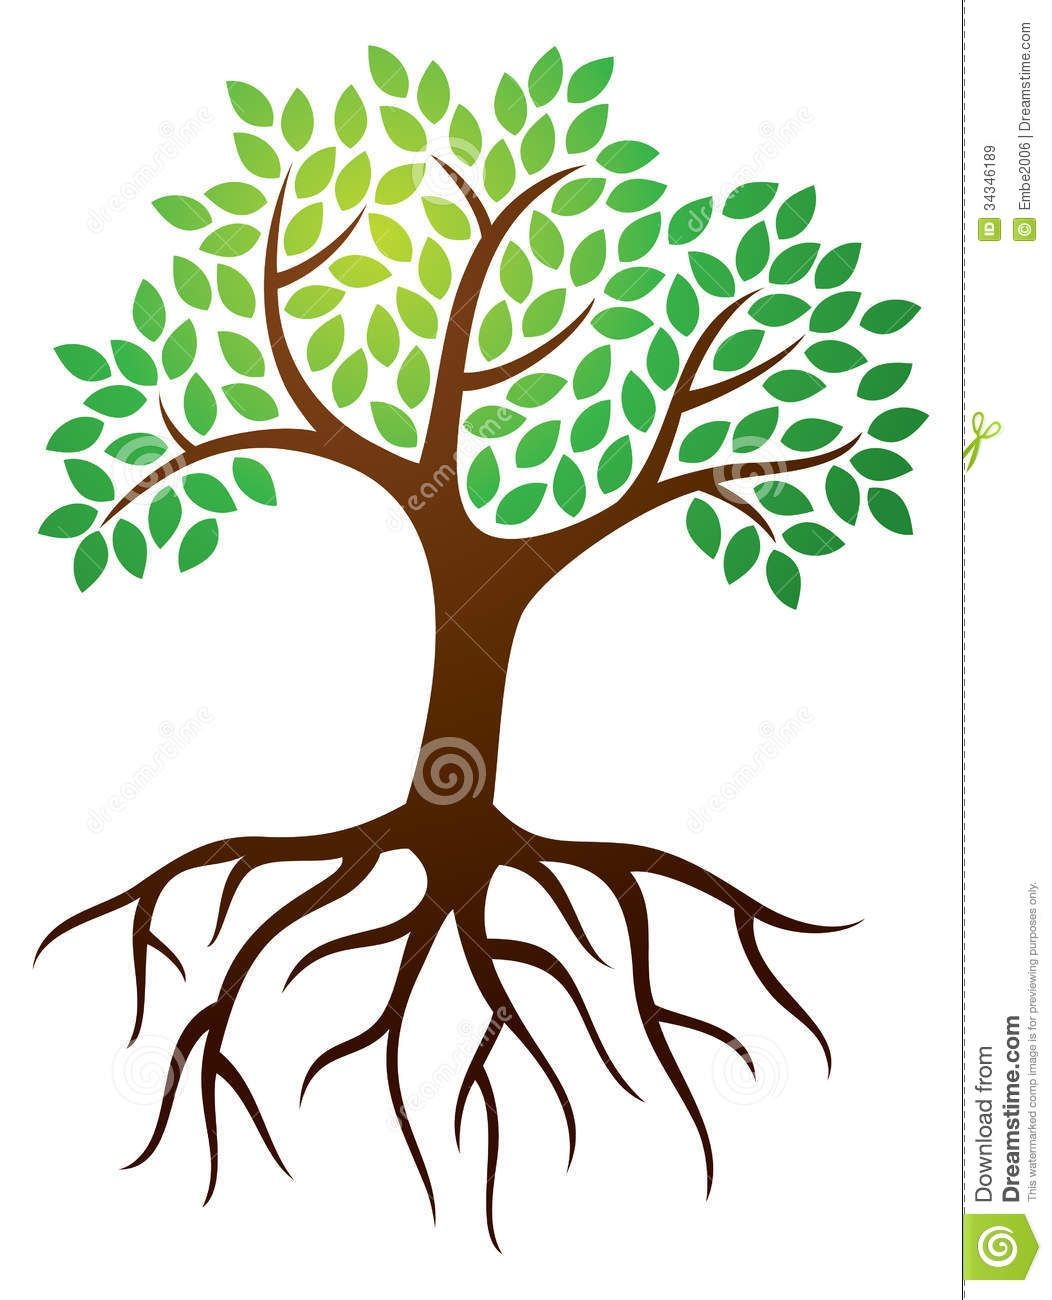 Root clipart transparent Clipart Of Trees With Roots - clipartsgram.com | Tree logos ... transparent